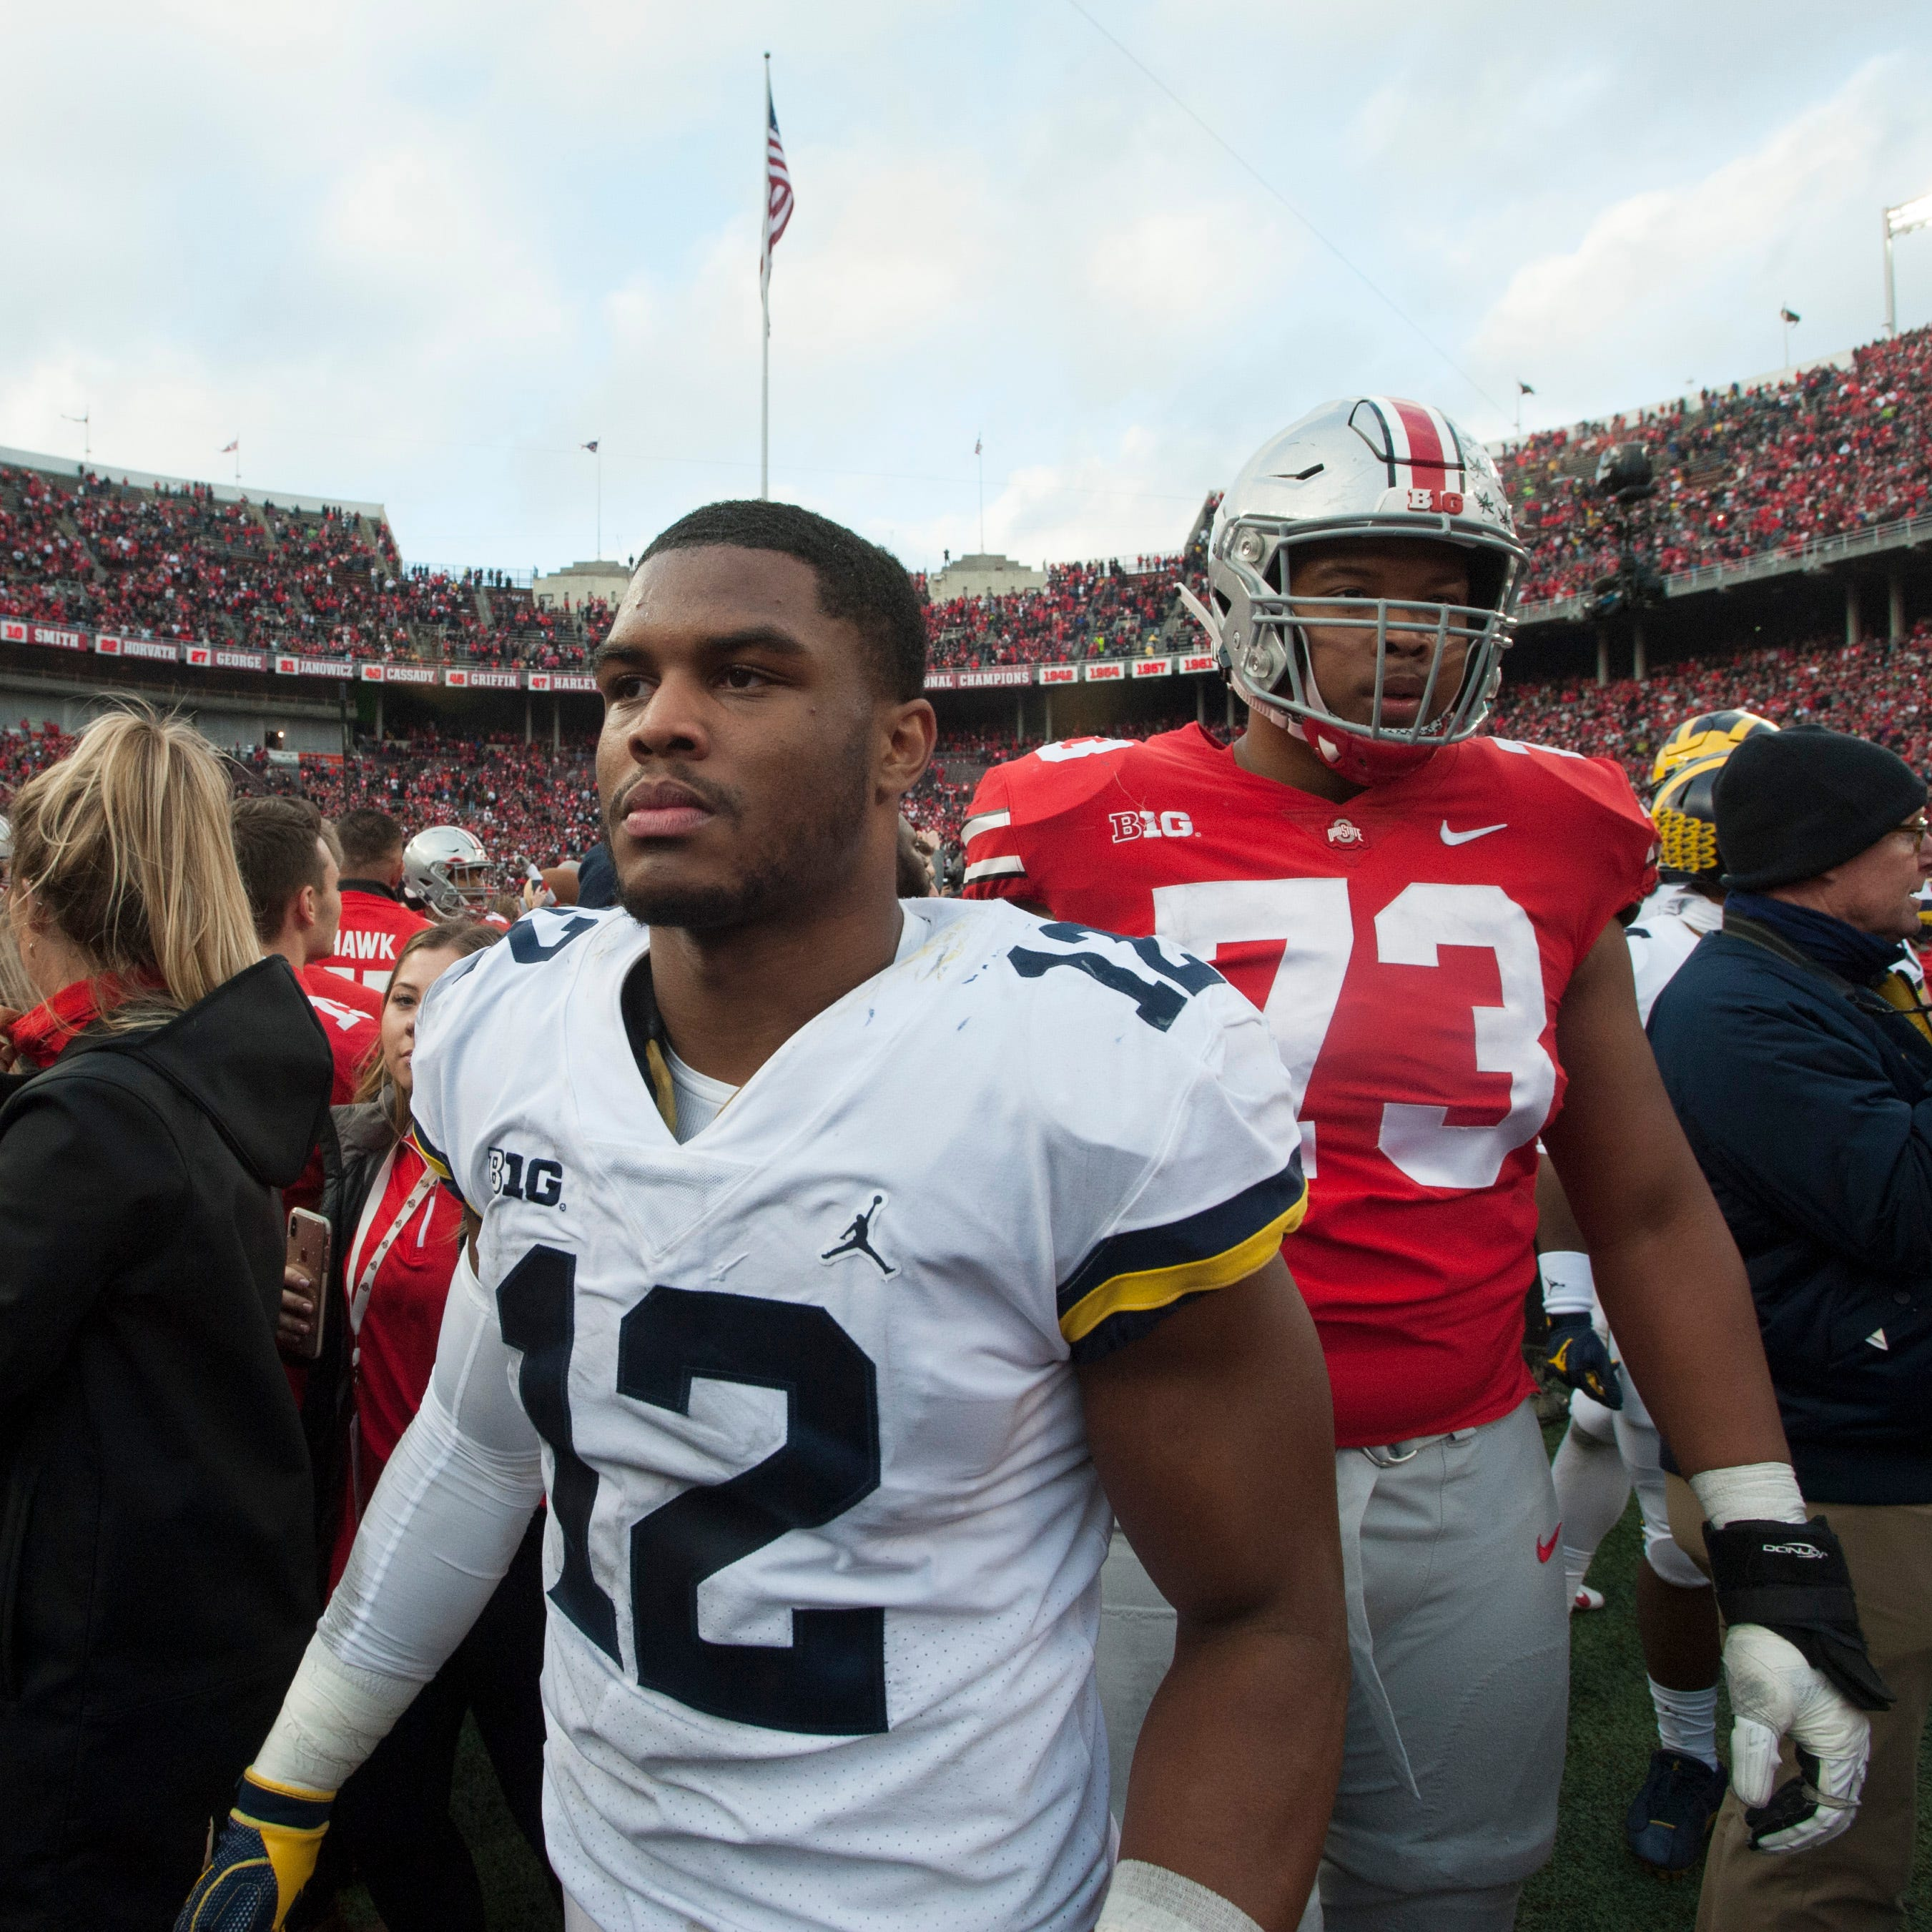 Michigan falls to No. 7 in College Football Playoff rankings